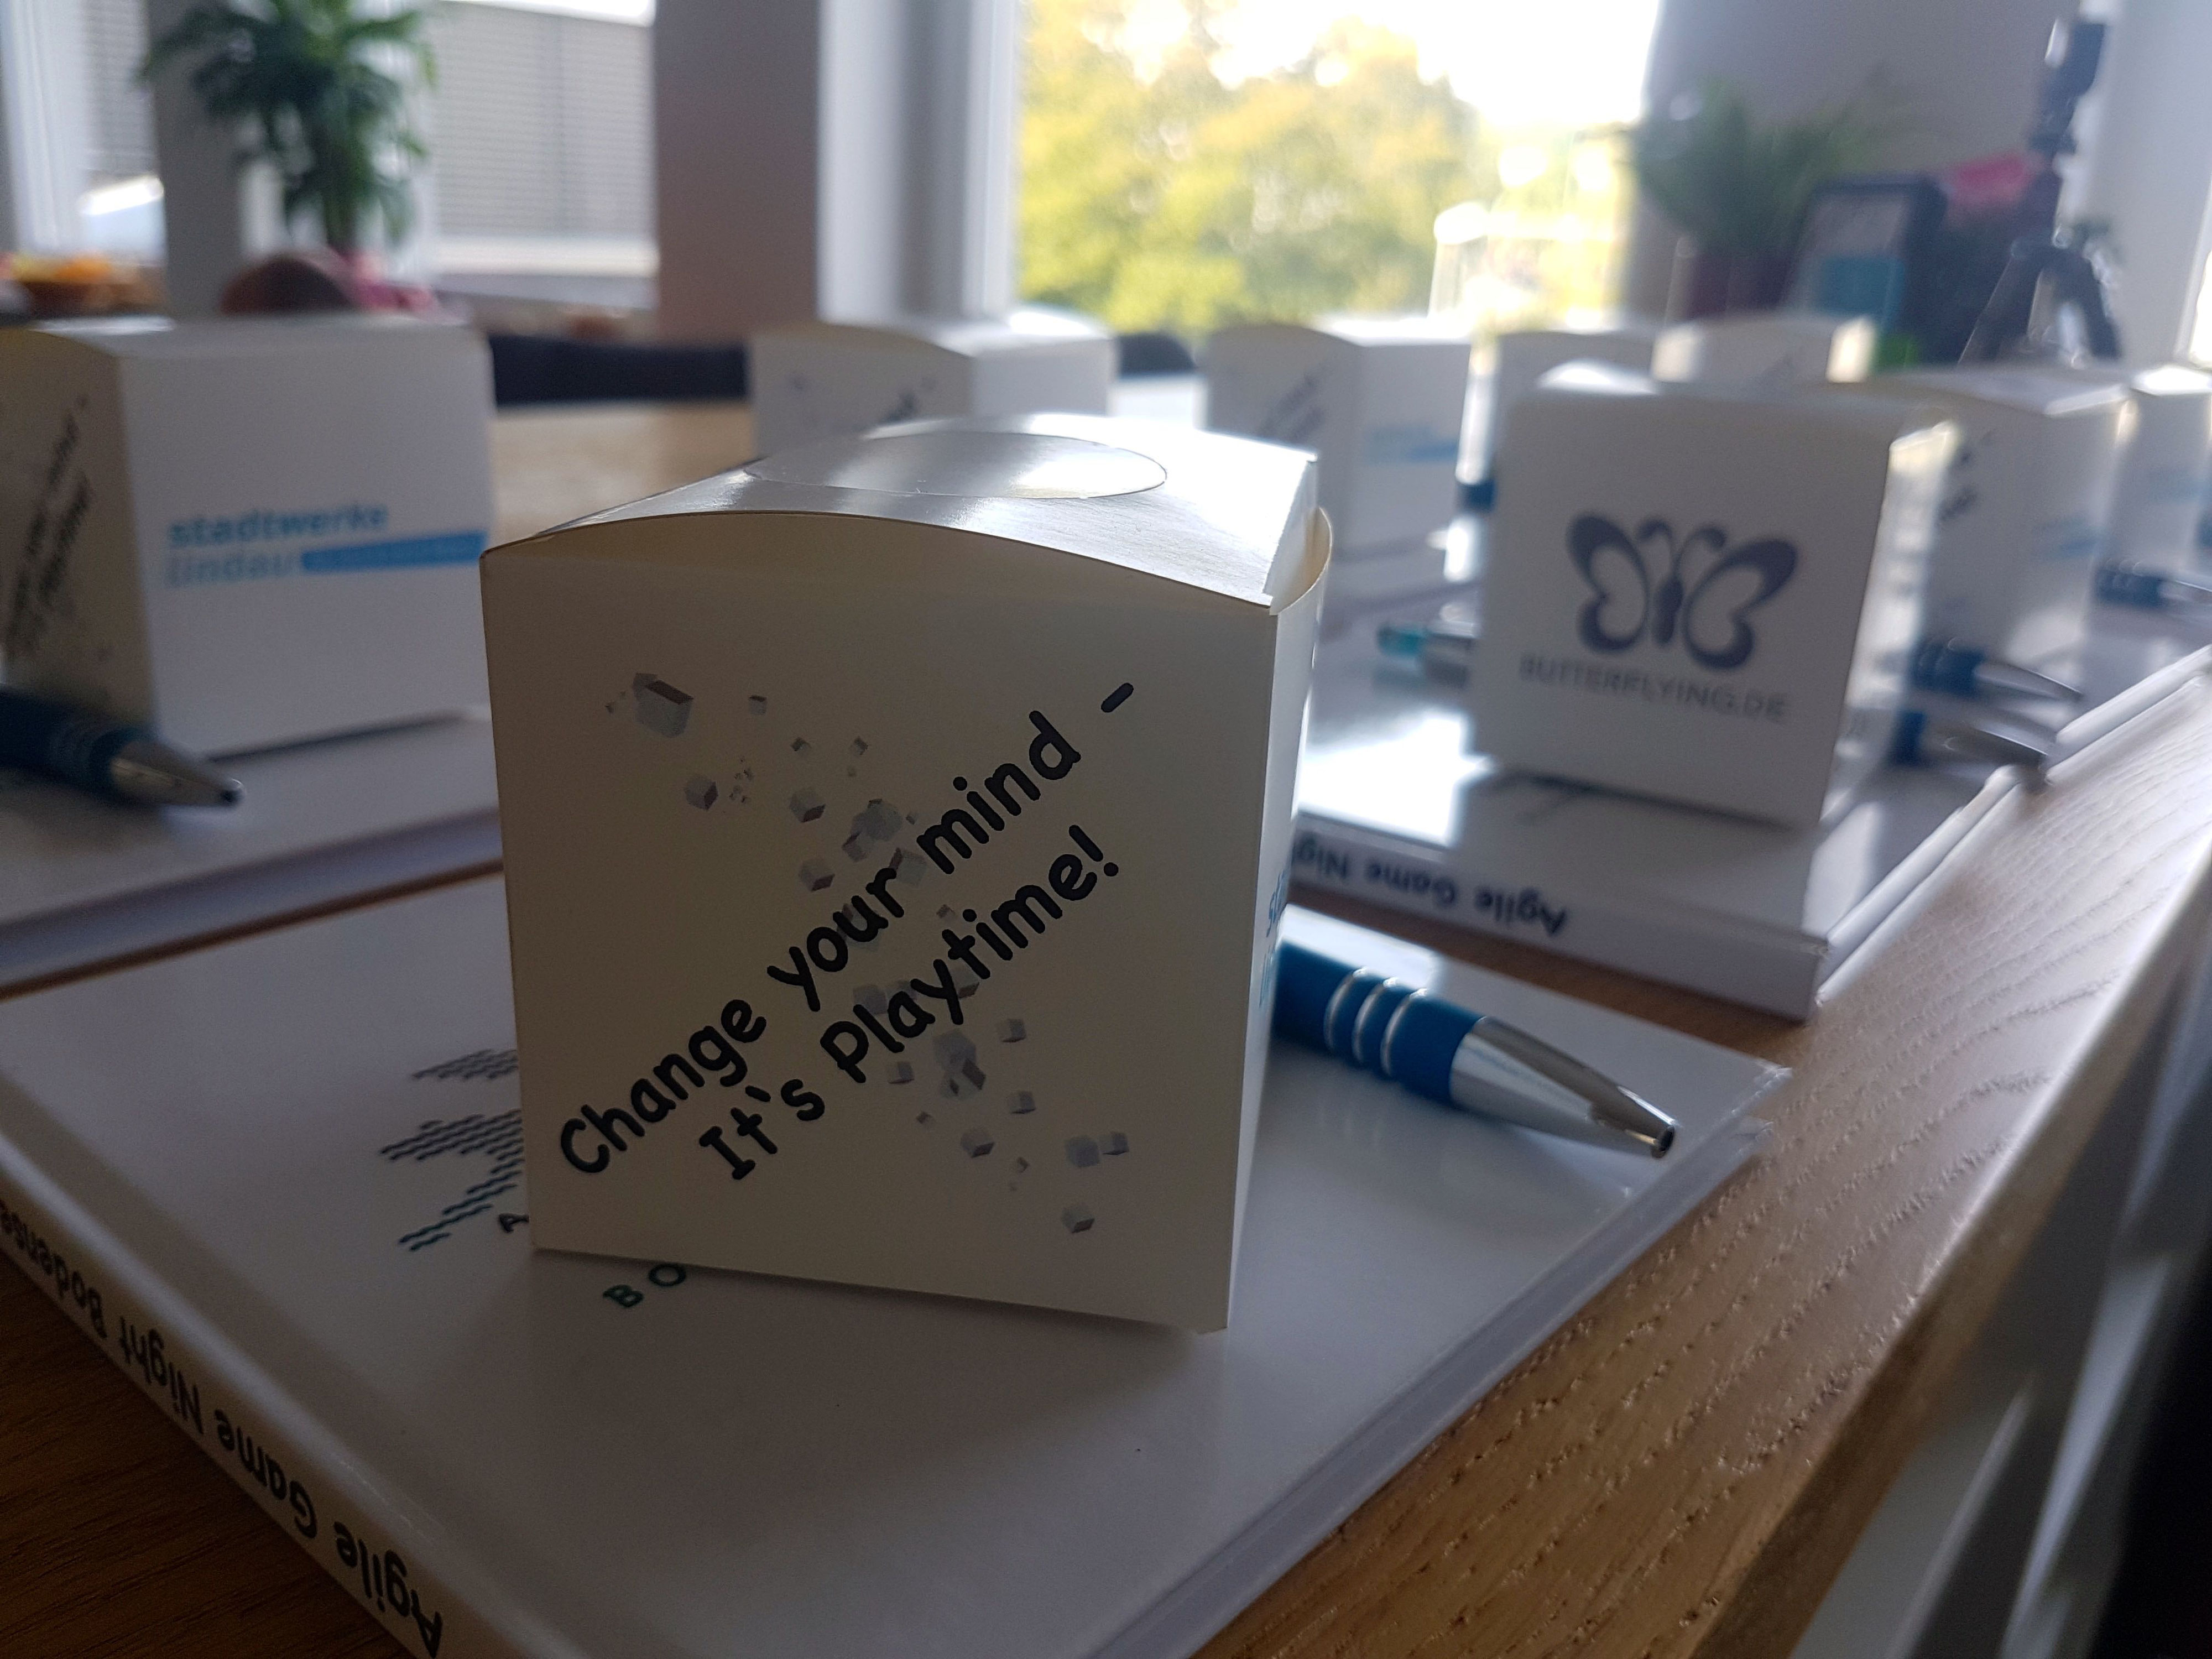 Agile Spiele 1. agile game night bodensee: change your mind - it's